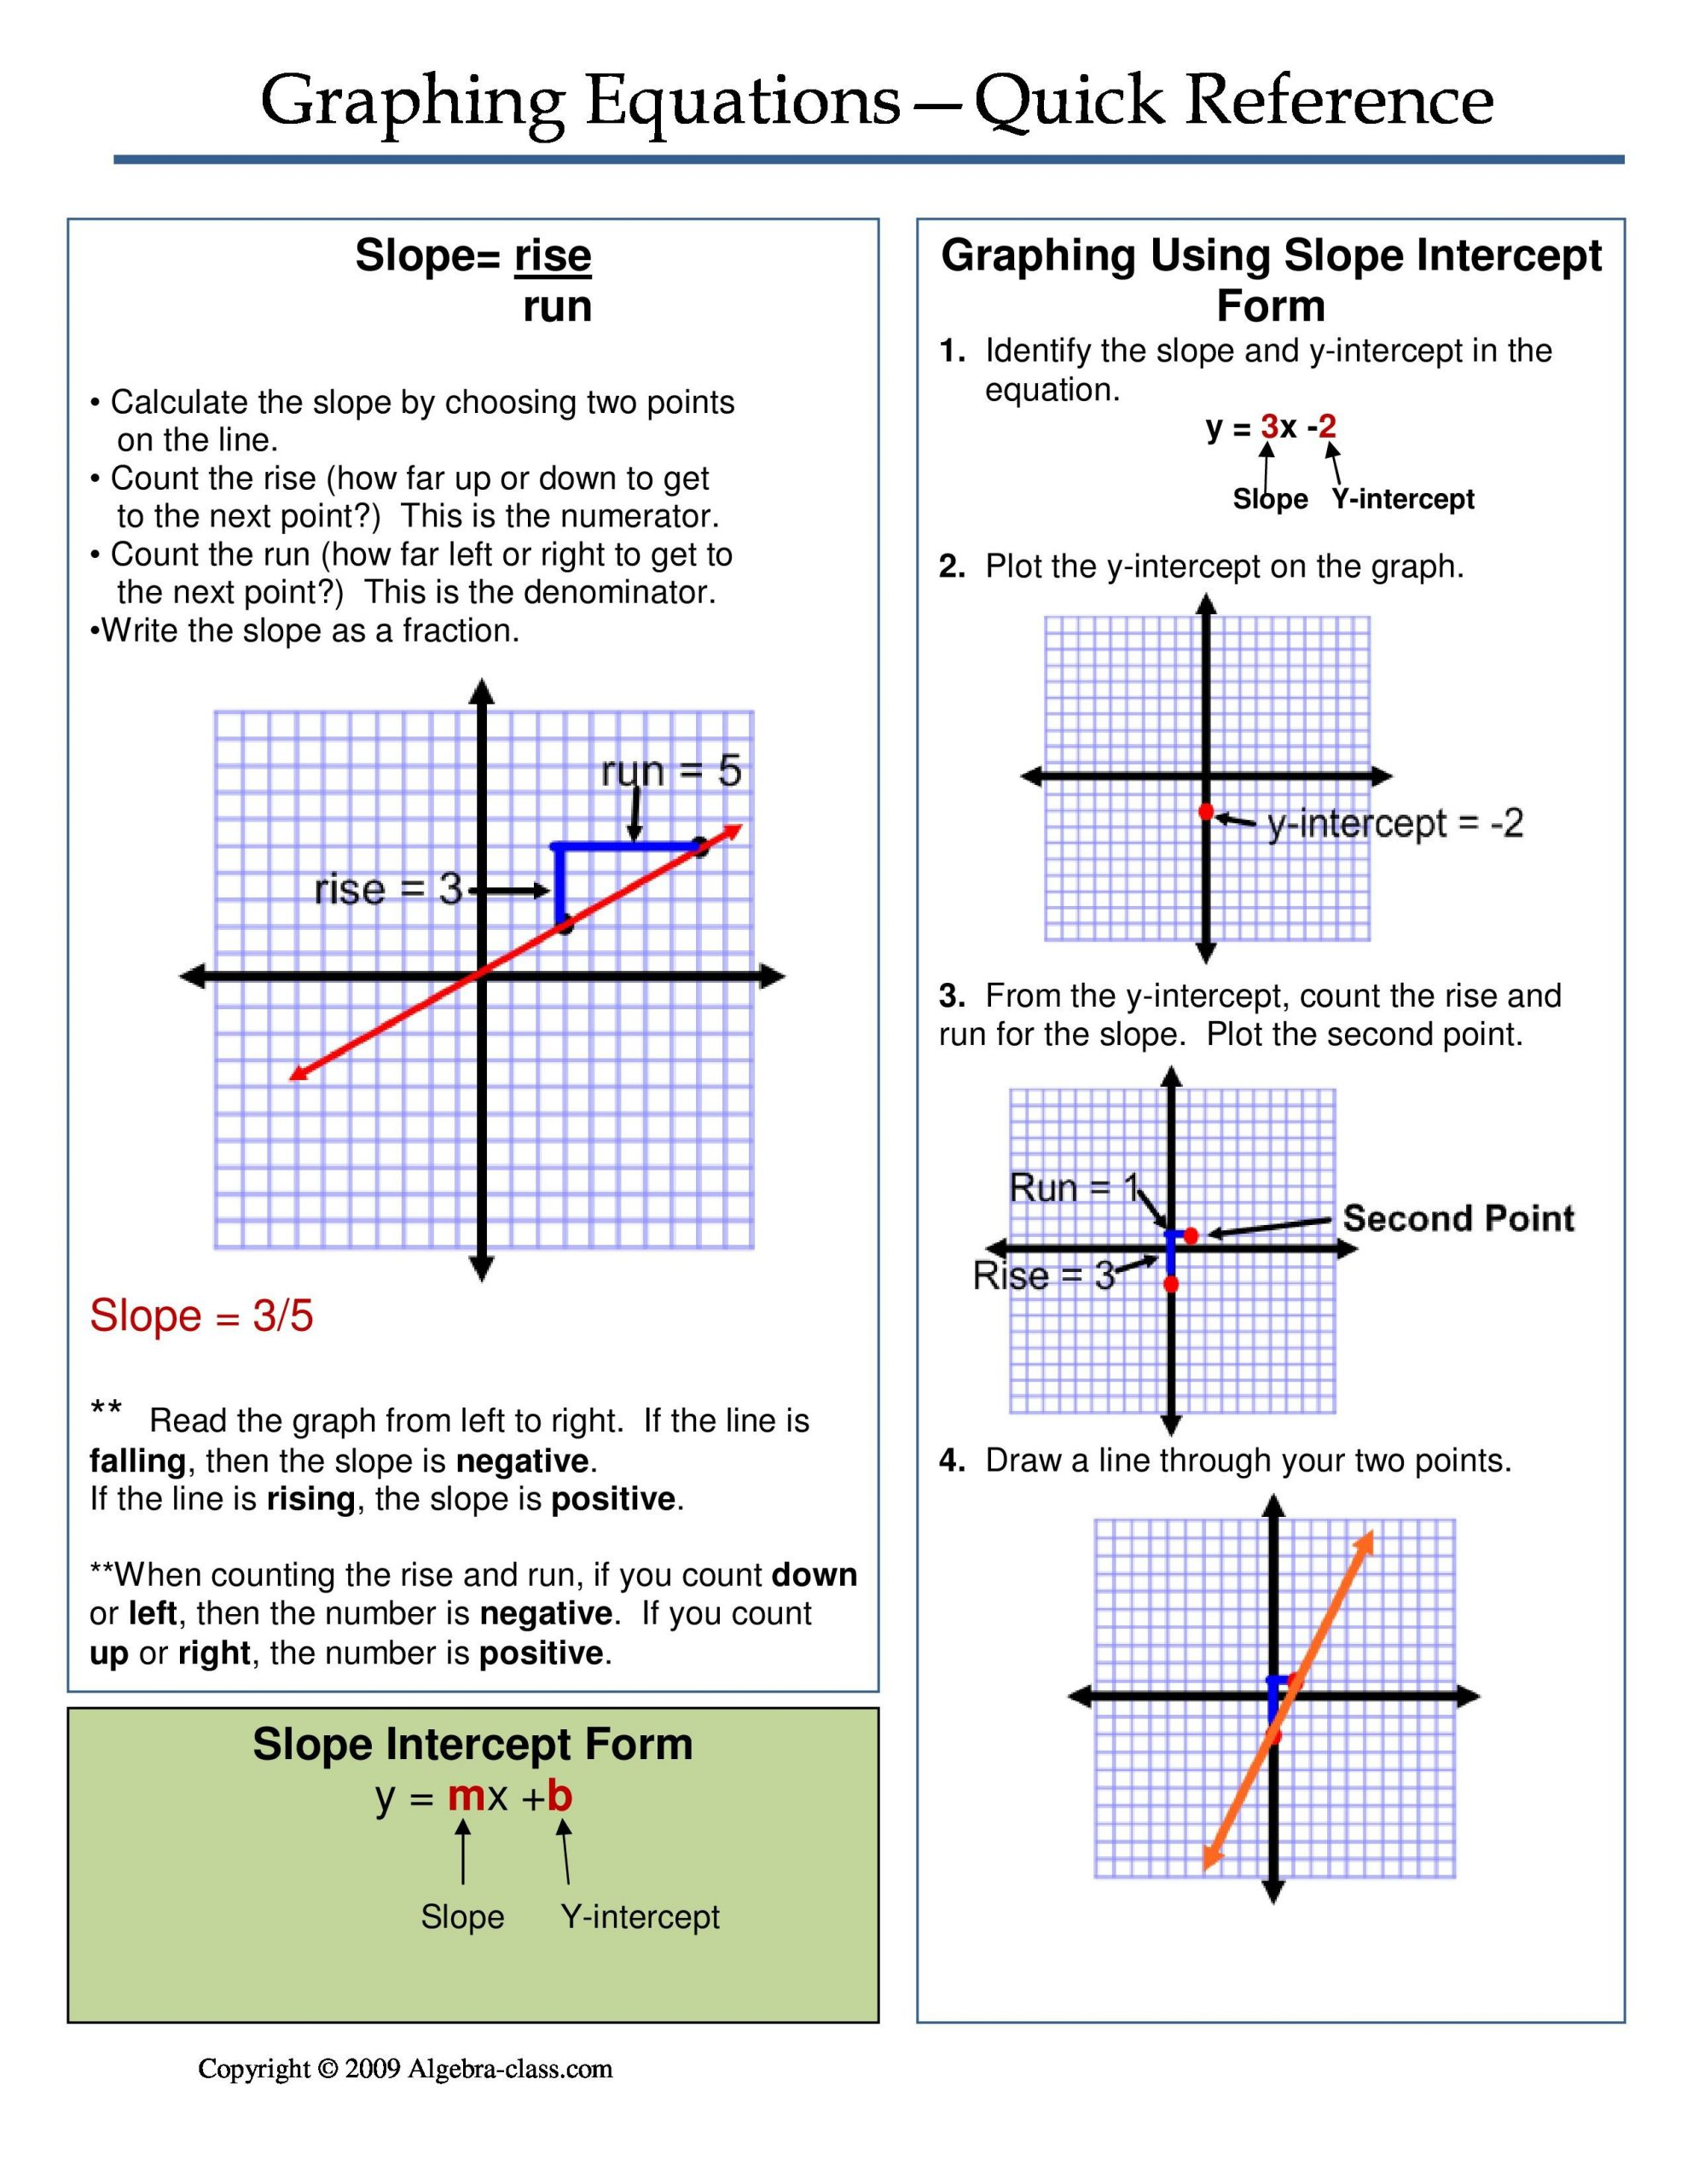 Writing Equations From Graphs Worksheet E Page Notes Worksheet for the Graphing Equations Unit